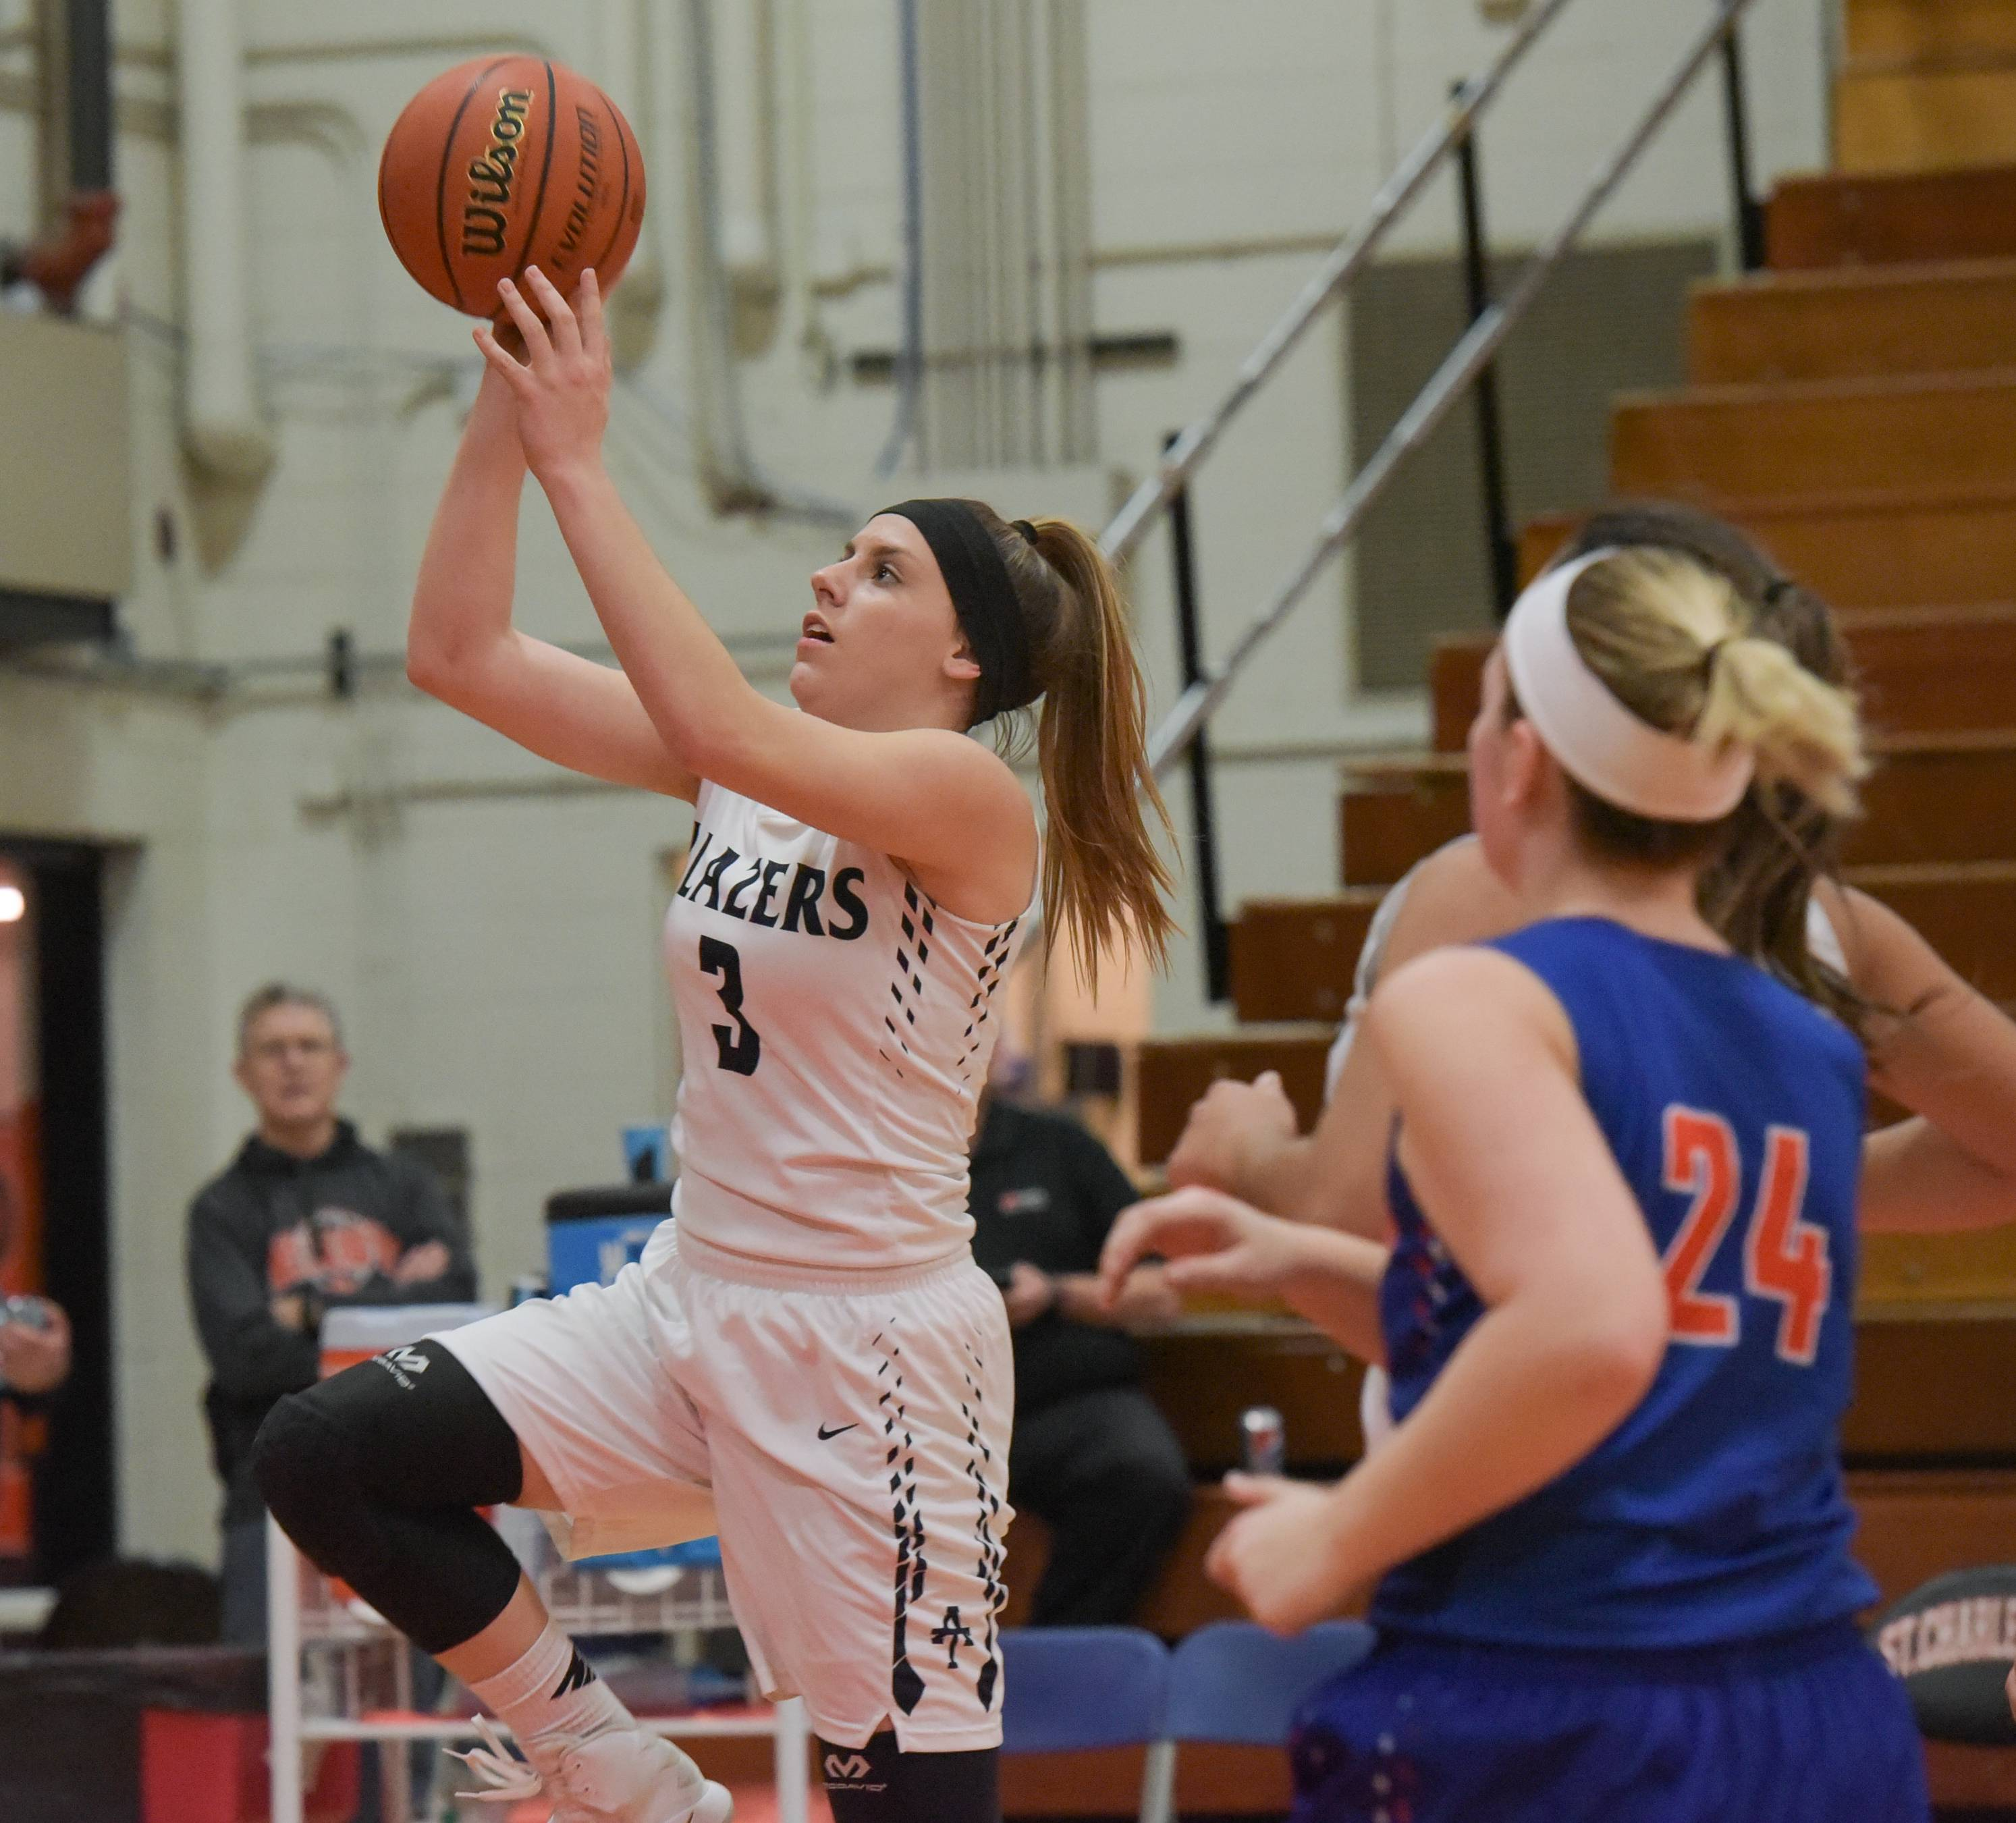 Addison Trail's Nicci Scorza lays up for a shot against Fenton during the girls regional quarterfinal basketball game February 13, 2017 at St. Charles East.